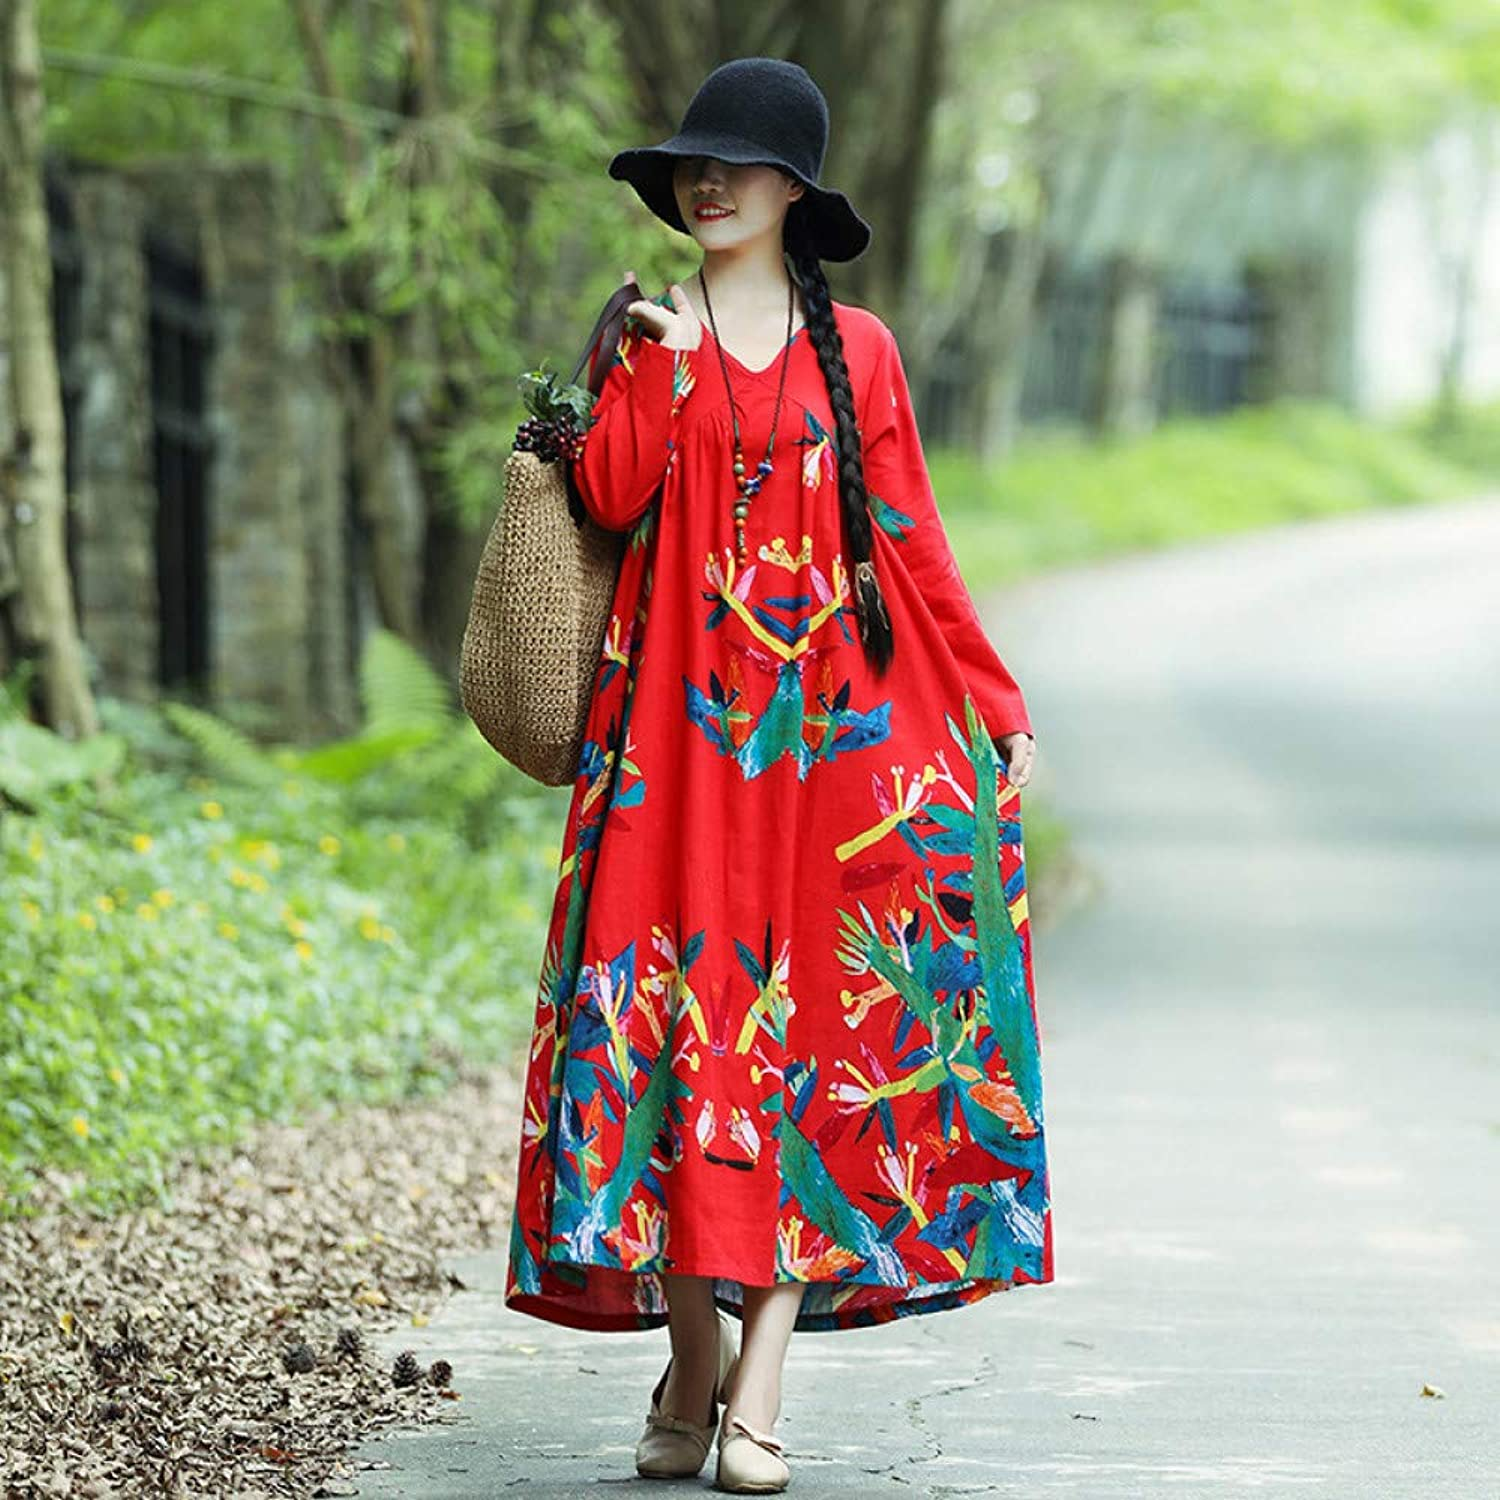 Cxlyq Dresses Cotton Leprosy Dress Female Long Sleeve Autumn Cotton Long Section Printed Skirt